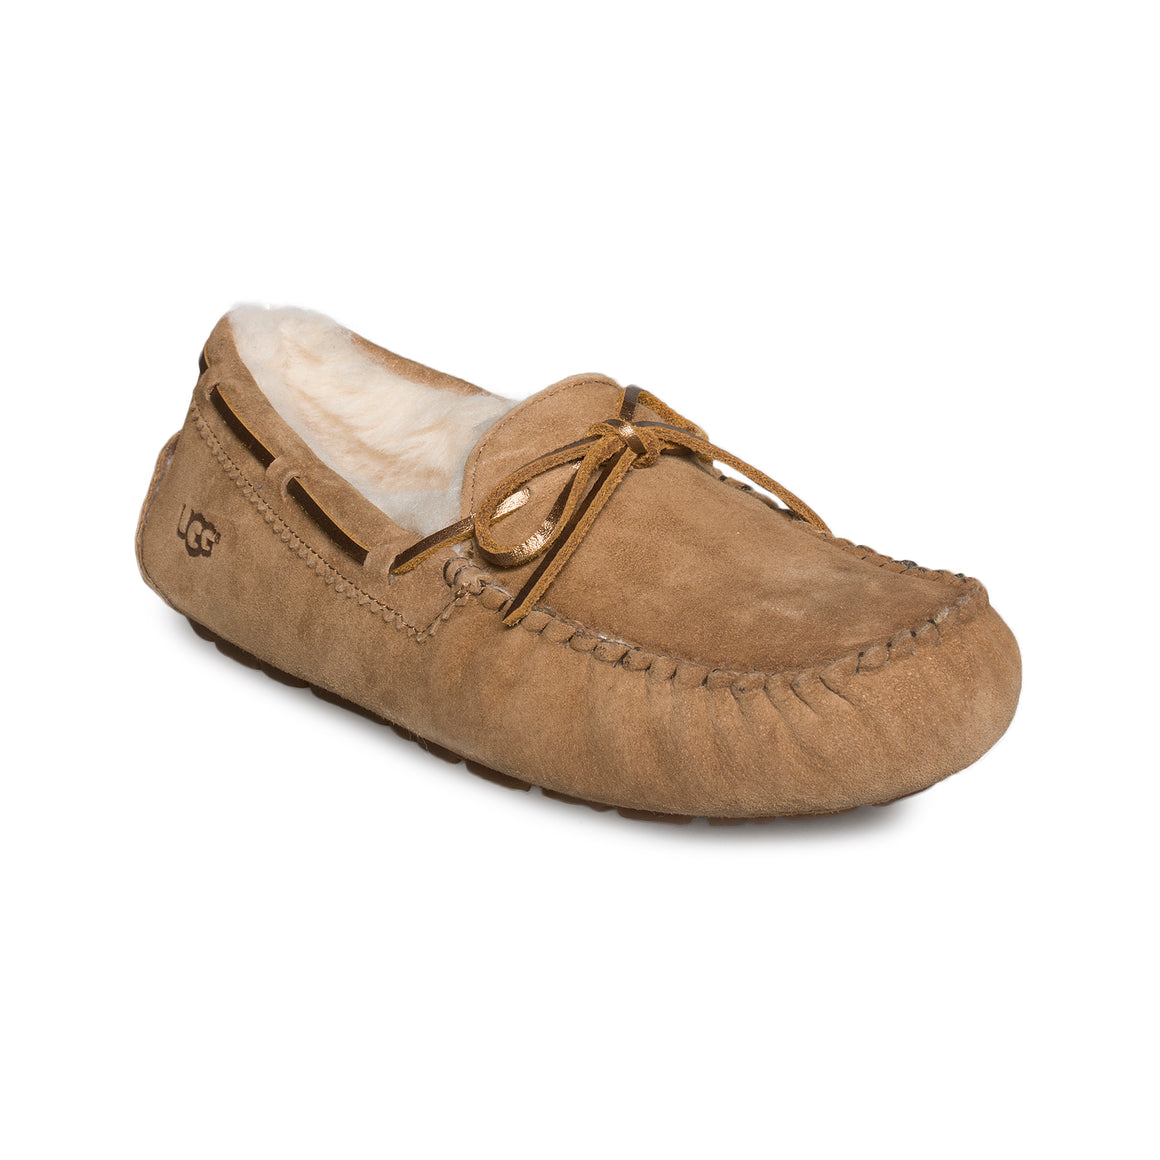 UGG Dakota Metallic Chestnut Slippers - Women's